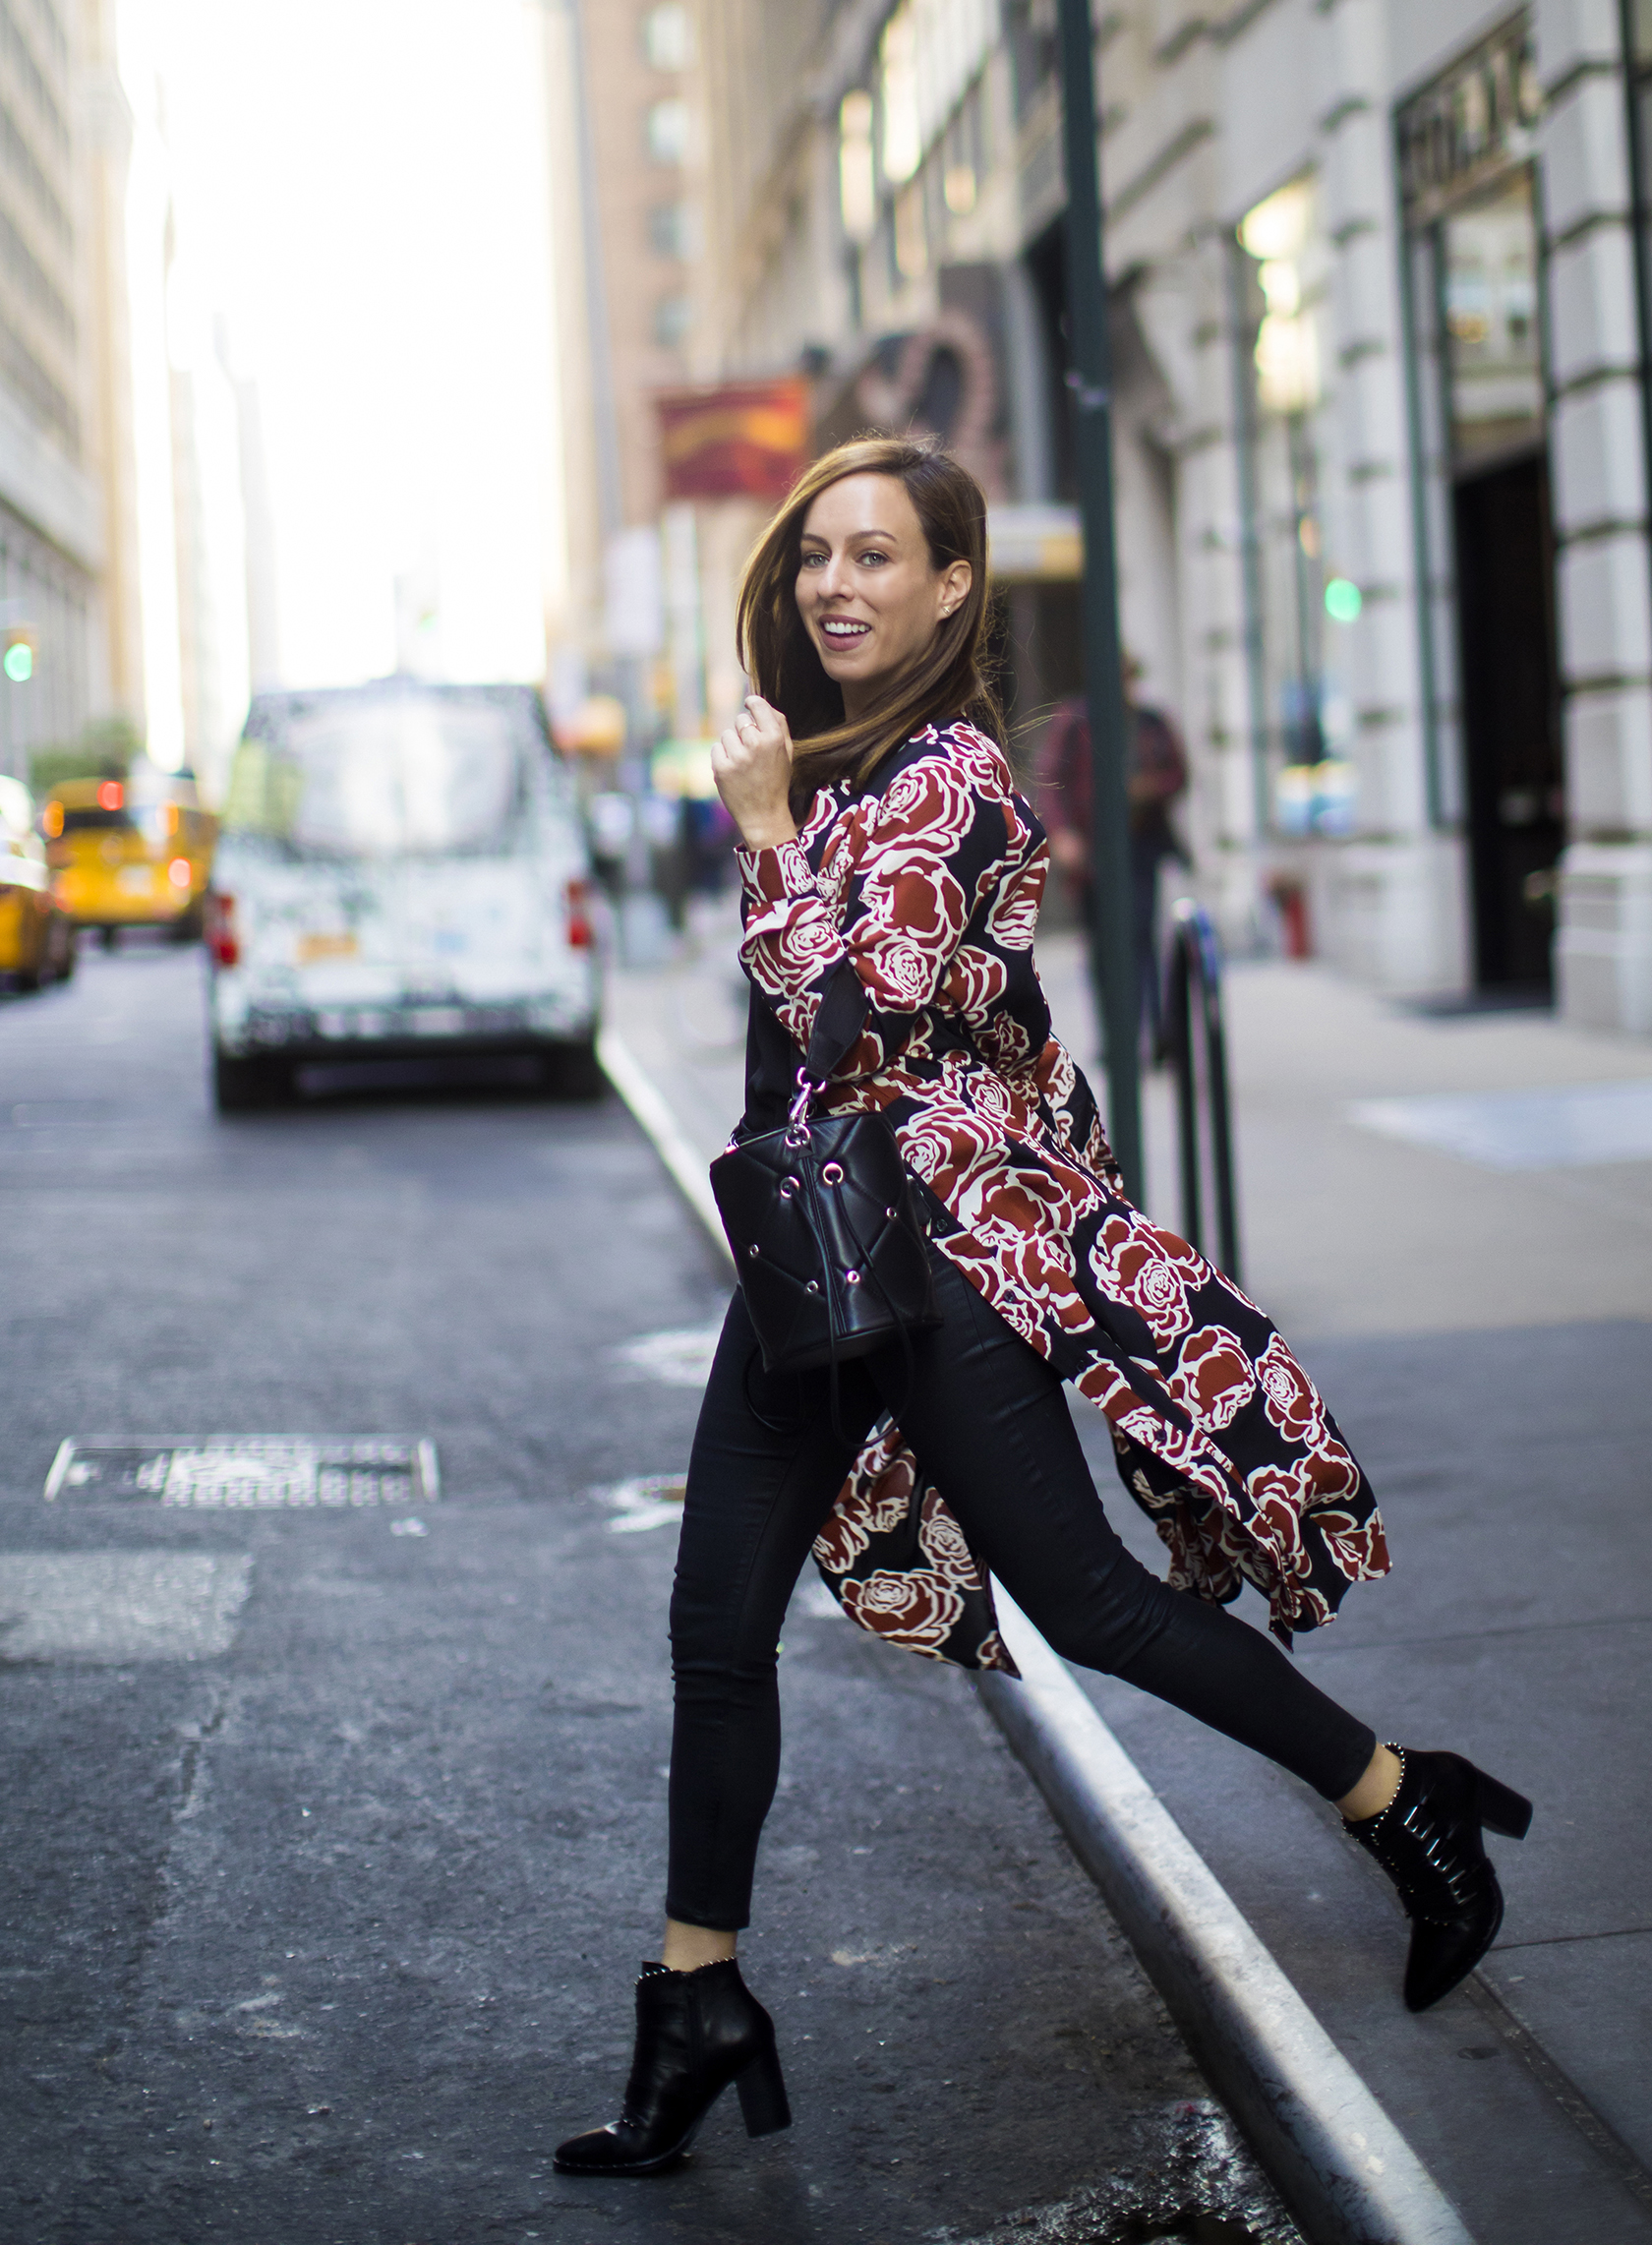 Sydne Style shows fall outfit ideas with floral shirt dress and jeans